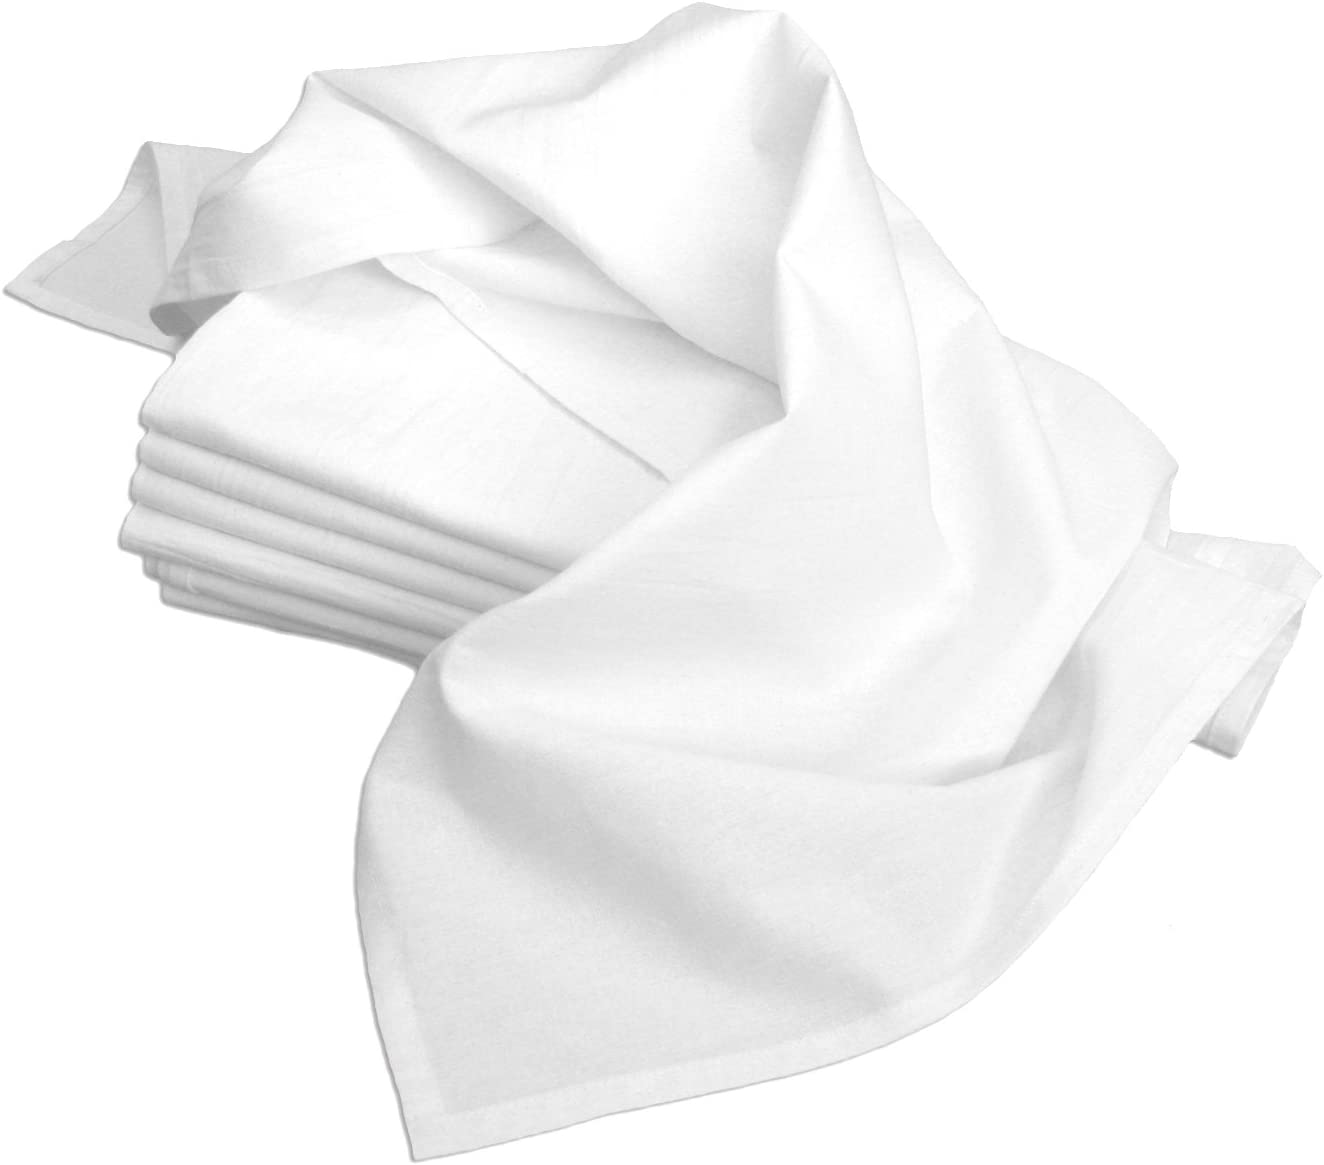 Aunt Martha's 28-Inch by 28-Inch Flour Sack Dish Towels, Premium 130 Thread Count, White, Set of 7